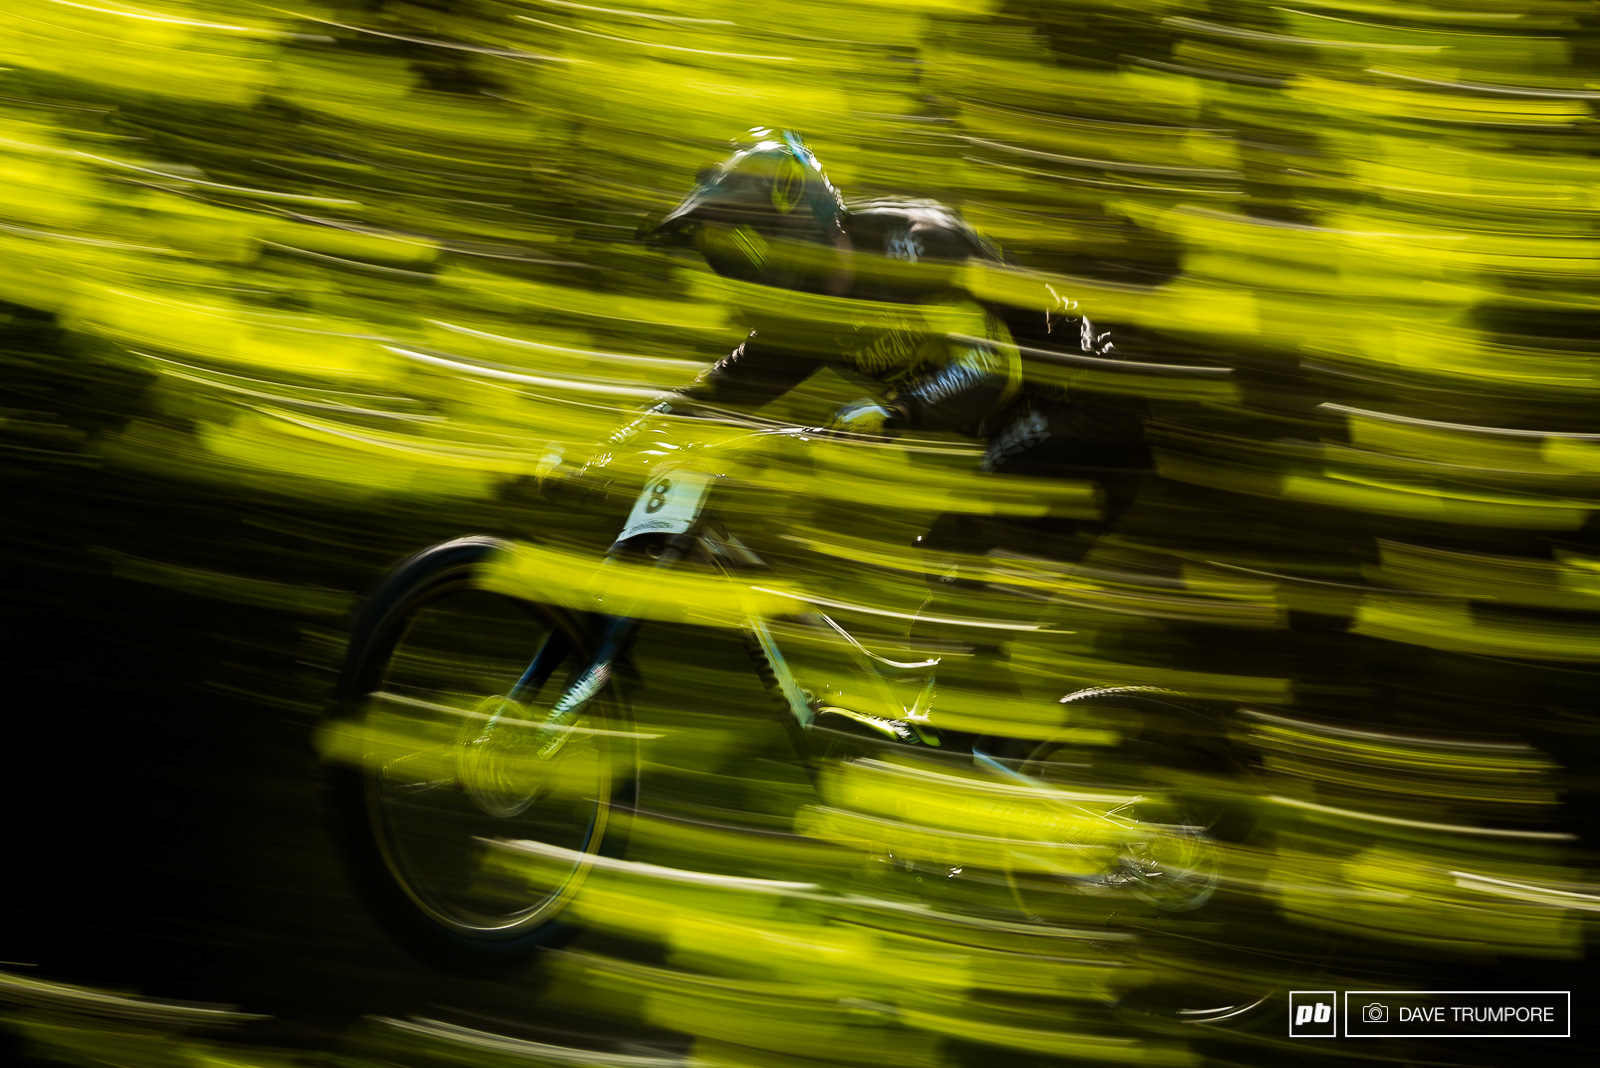 Remi Thirion at warp speed near the top of the track.